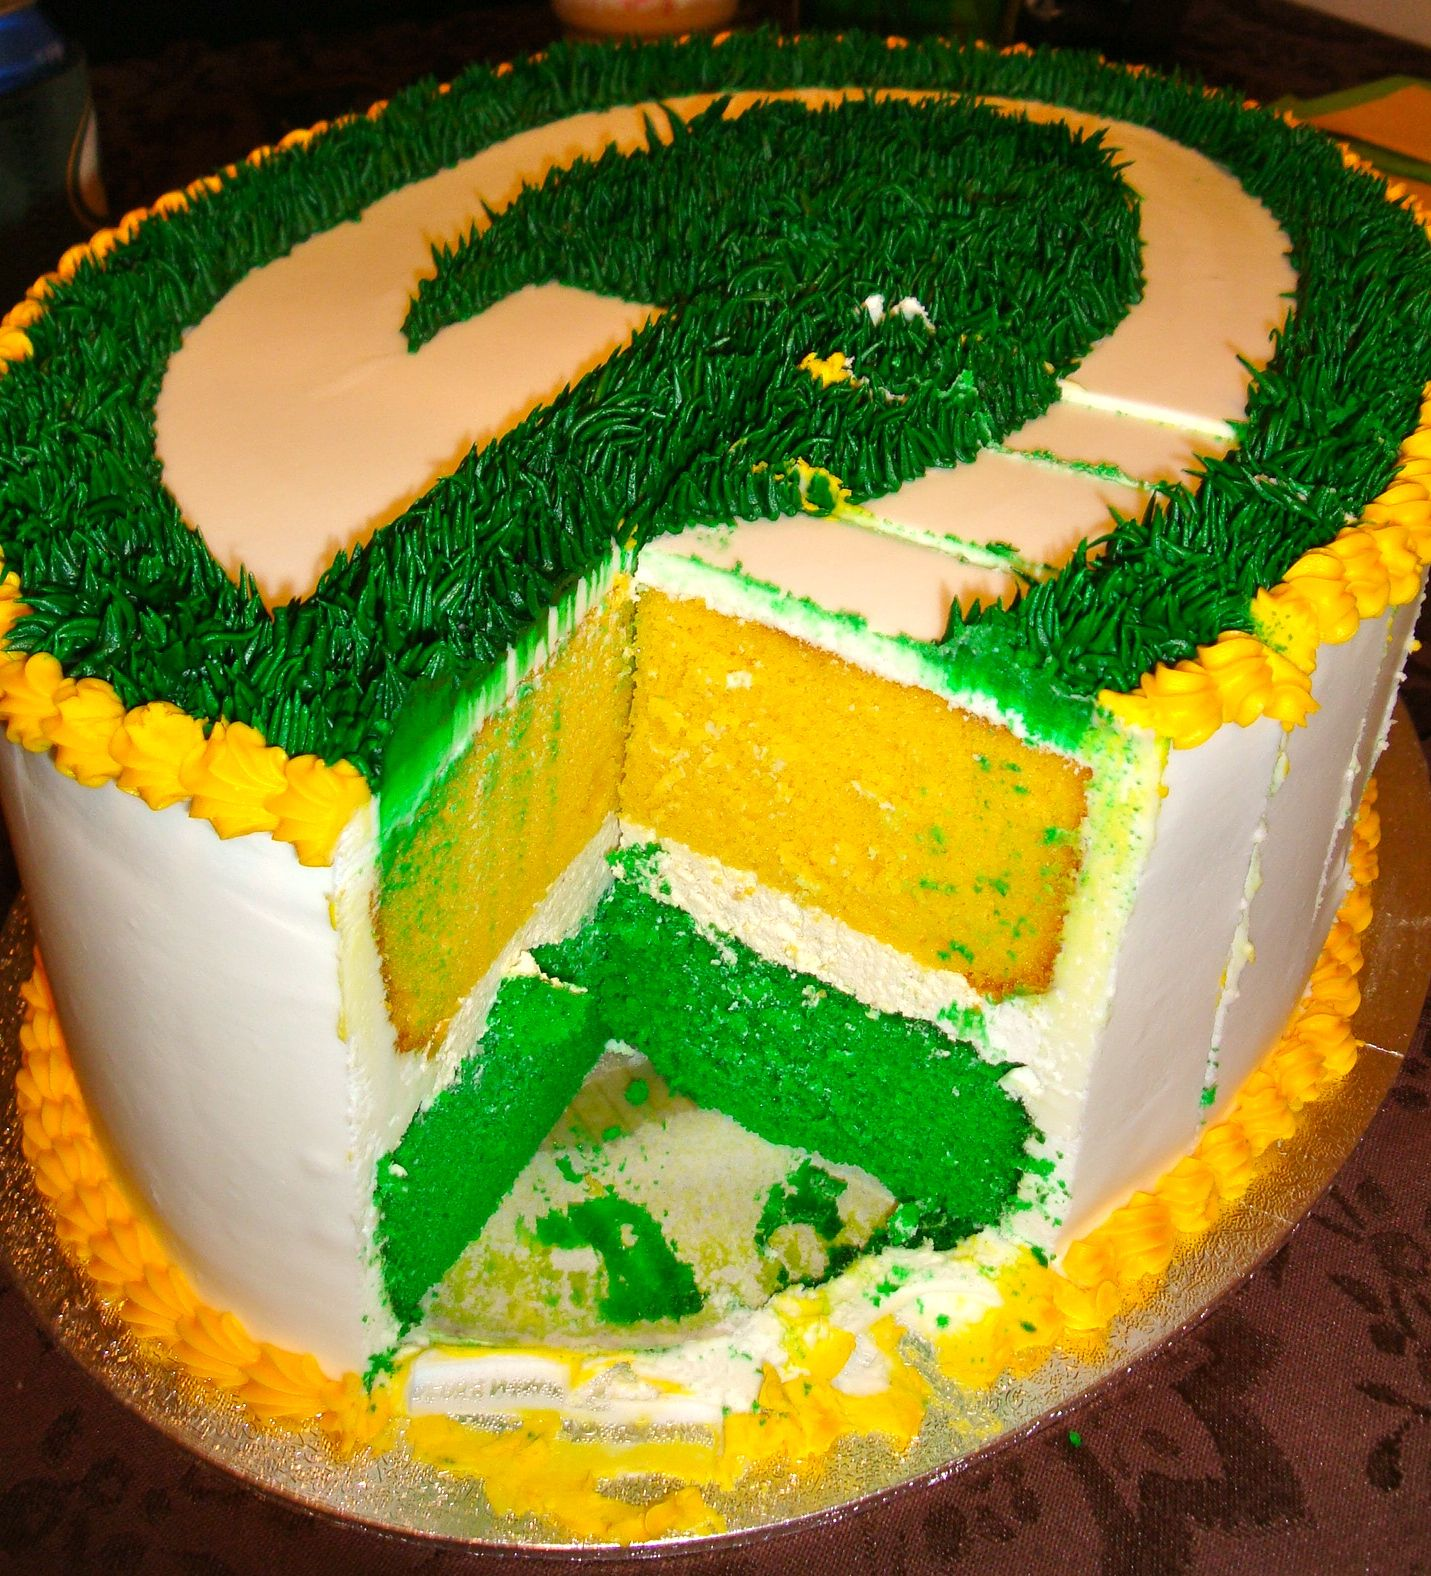 Another Shot Of The GB Packers Birthday Cake I Had Made At